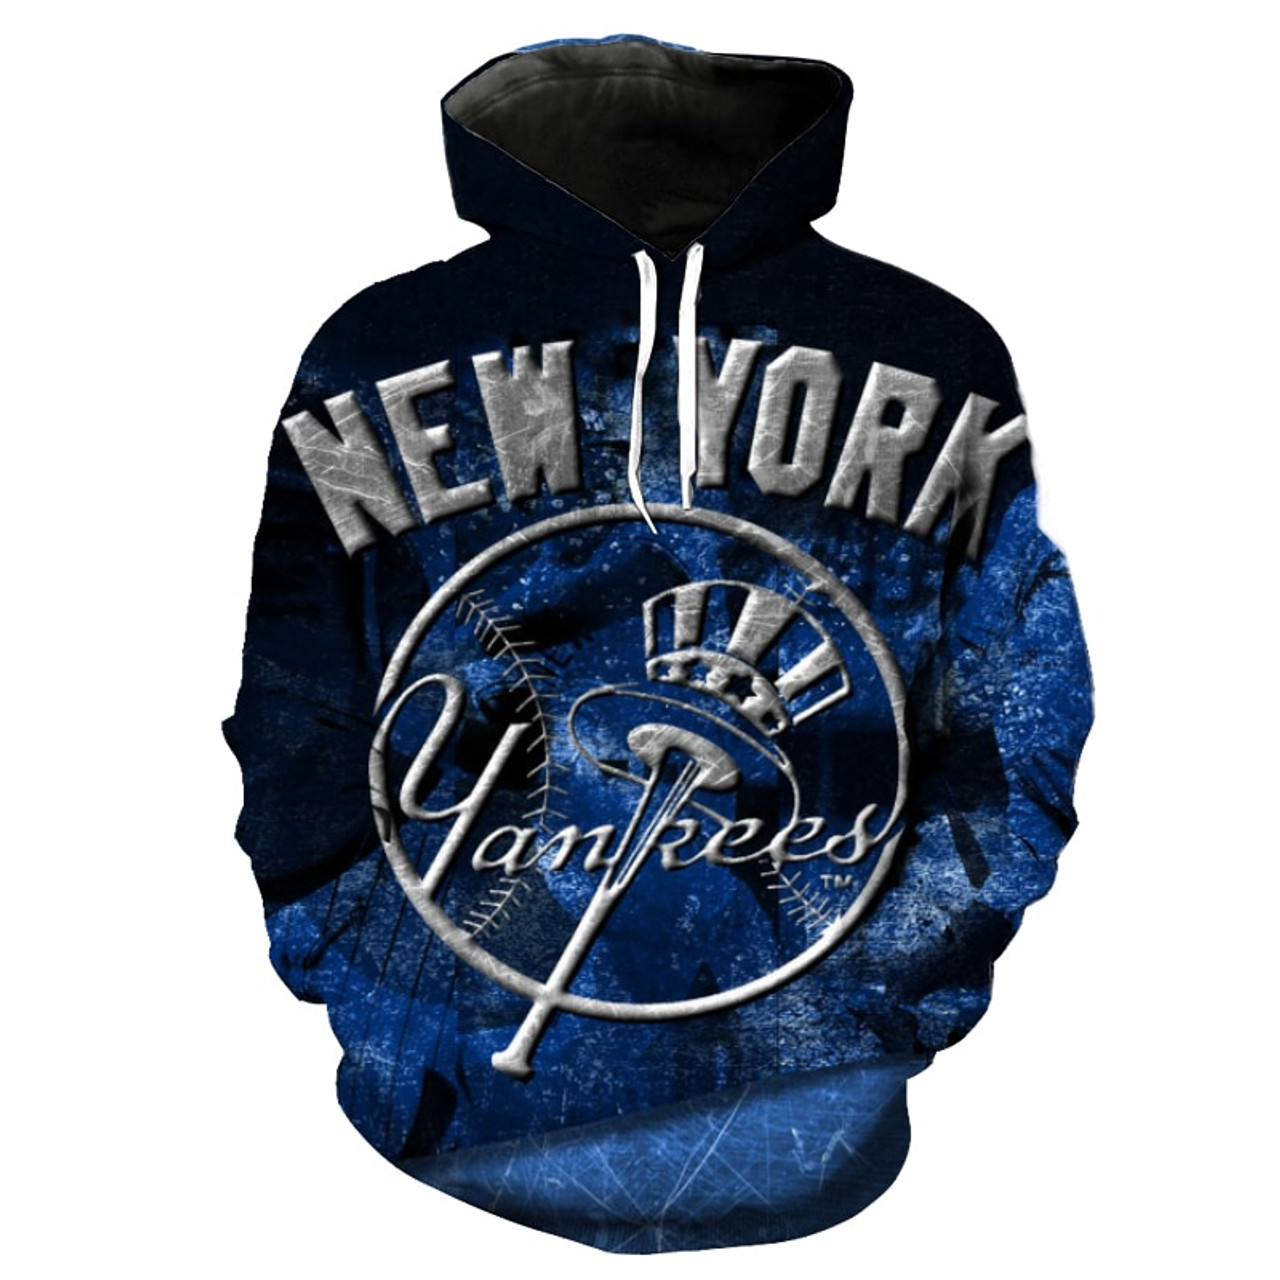 **(NEW-OFFICIALLY-LICENSED-M.L.B. NEW-YORK-YANKEES,OFFICIAL-TEAM-HOODIES/NICE-CUSTOM-DETAILED-3D-GRAPHIC-PRINTED/PREMIUM-ALL-OVER-DOUBLE-SIDED-PRINT/OFFICIAL-YANKEES-TEAM-COLORS & CLASSIC-YANKEES-HAT-AND-BAT-LOGO/DEEP-POCKETED-PULLOVER-HOODIES)**